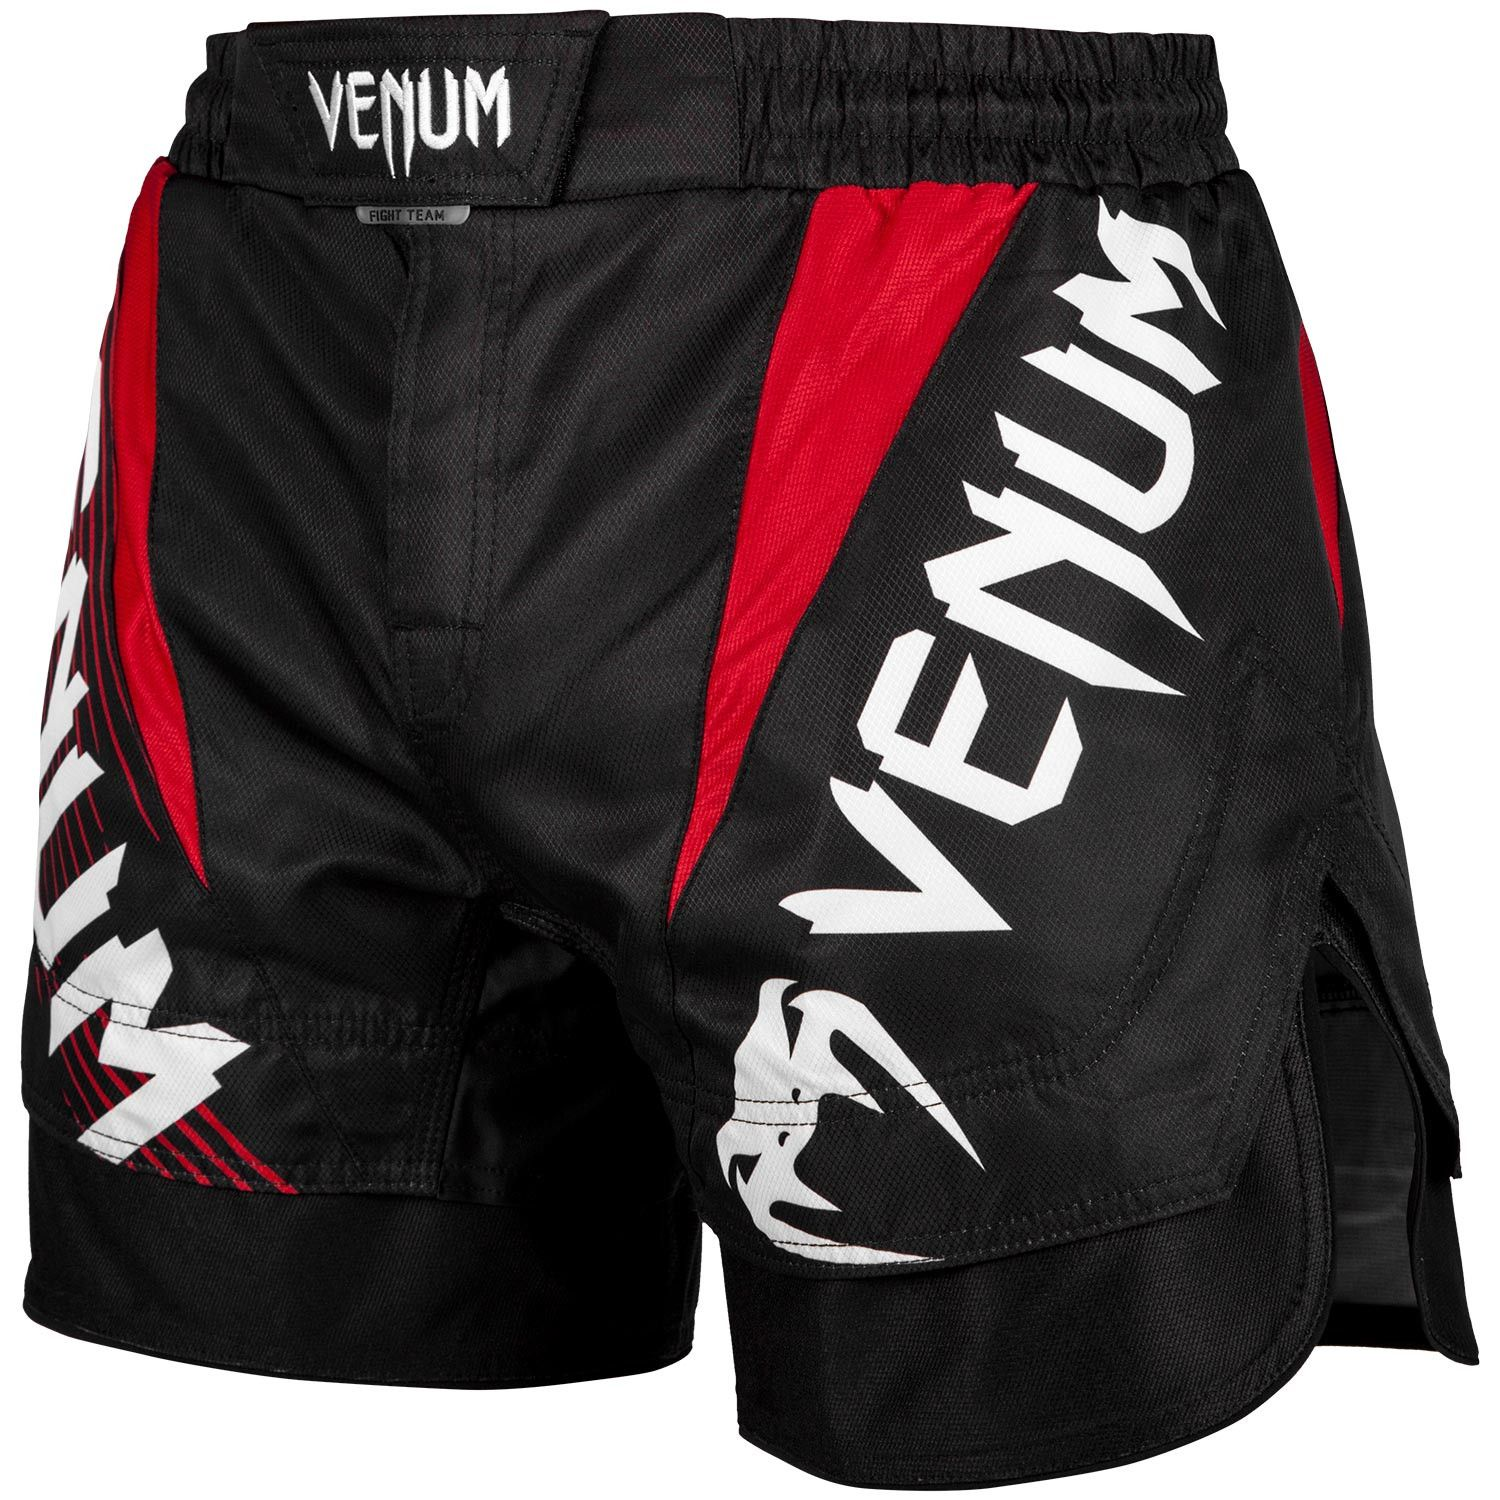 Venum Nogi 2.0 Fightshorts (Black/Red)